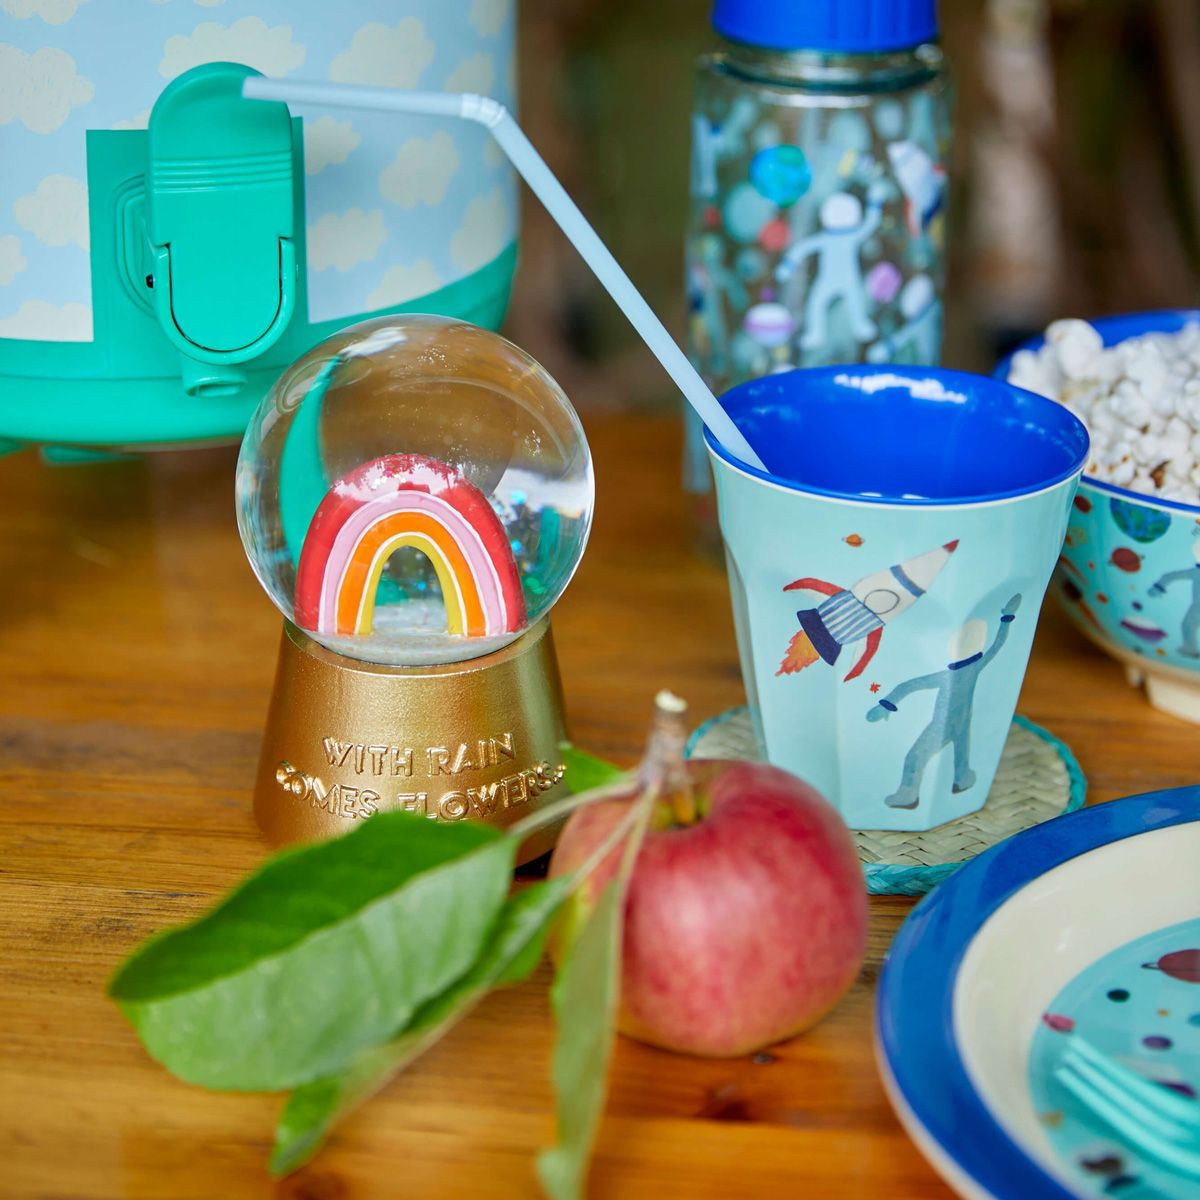 Glas Schneekugel 'You Go Girl' Regenbogen